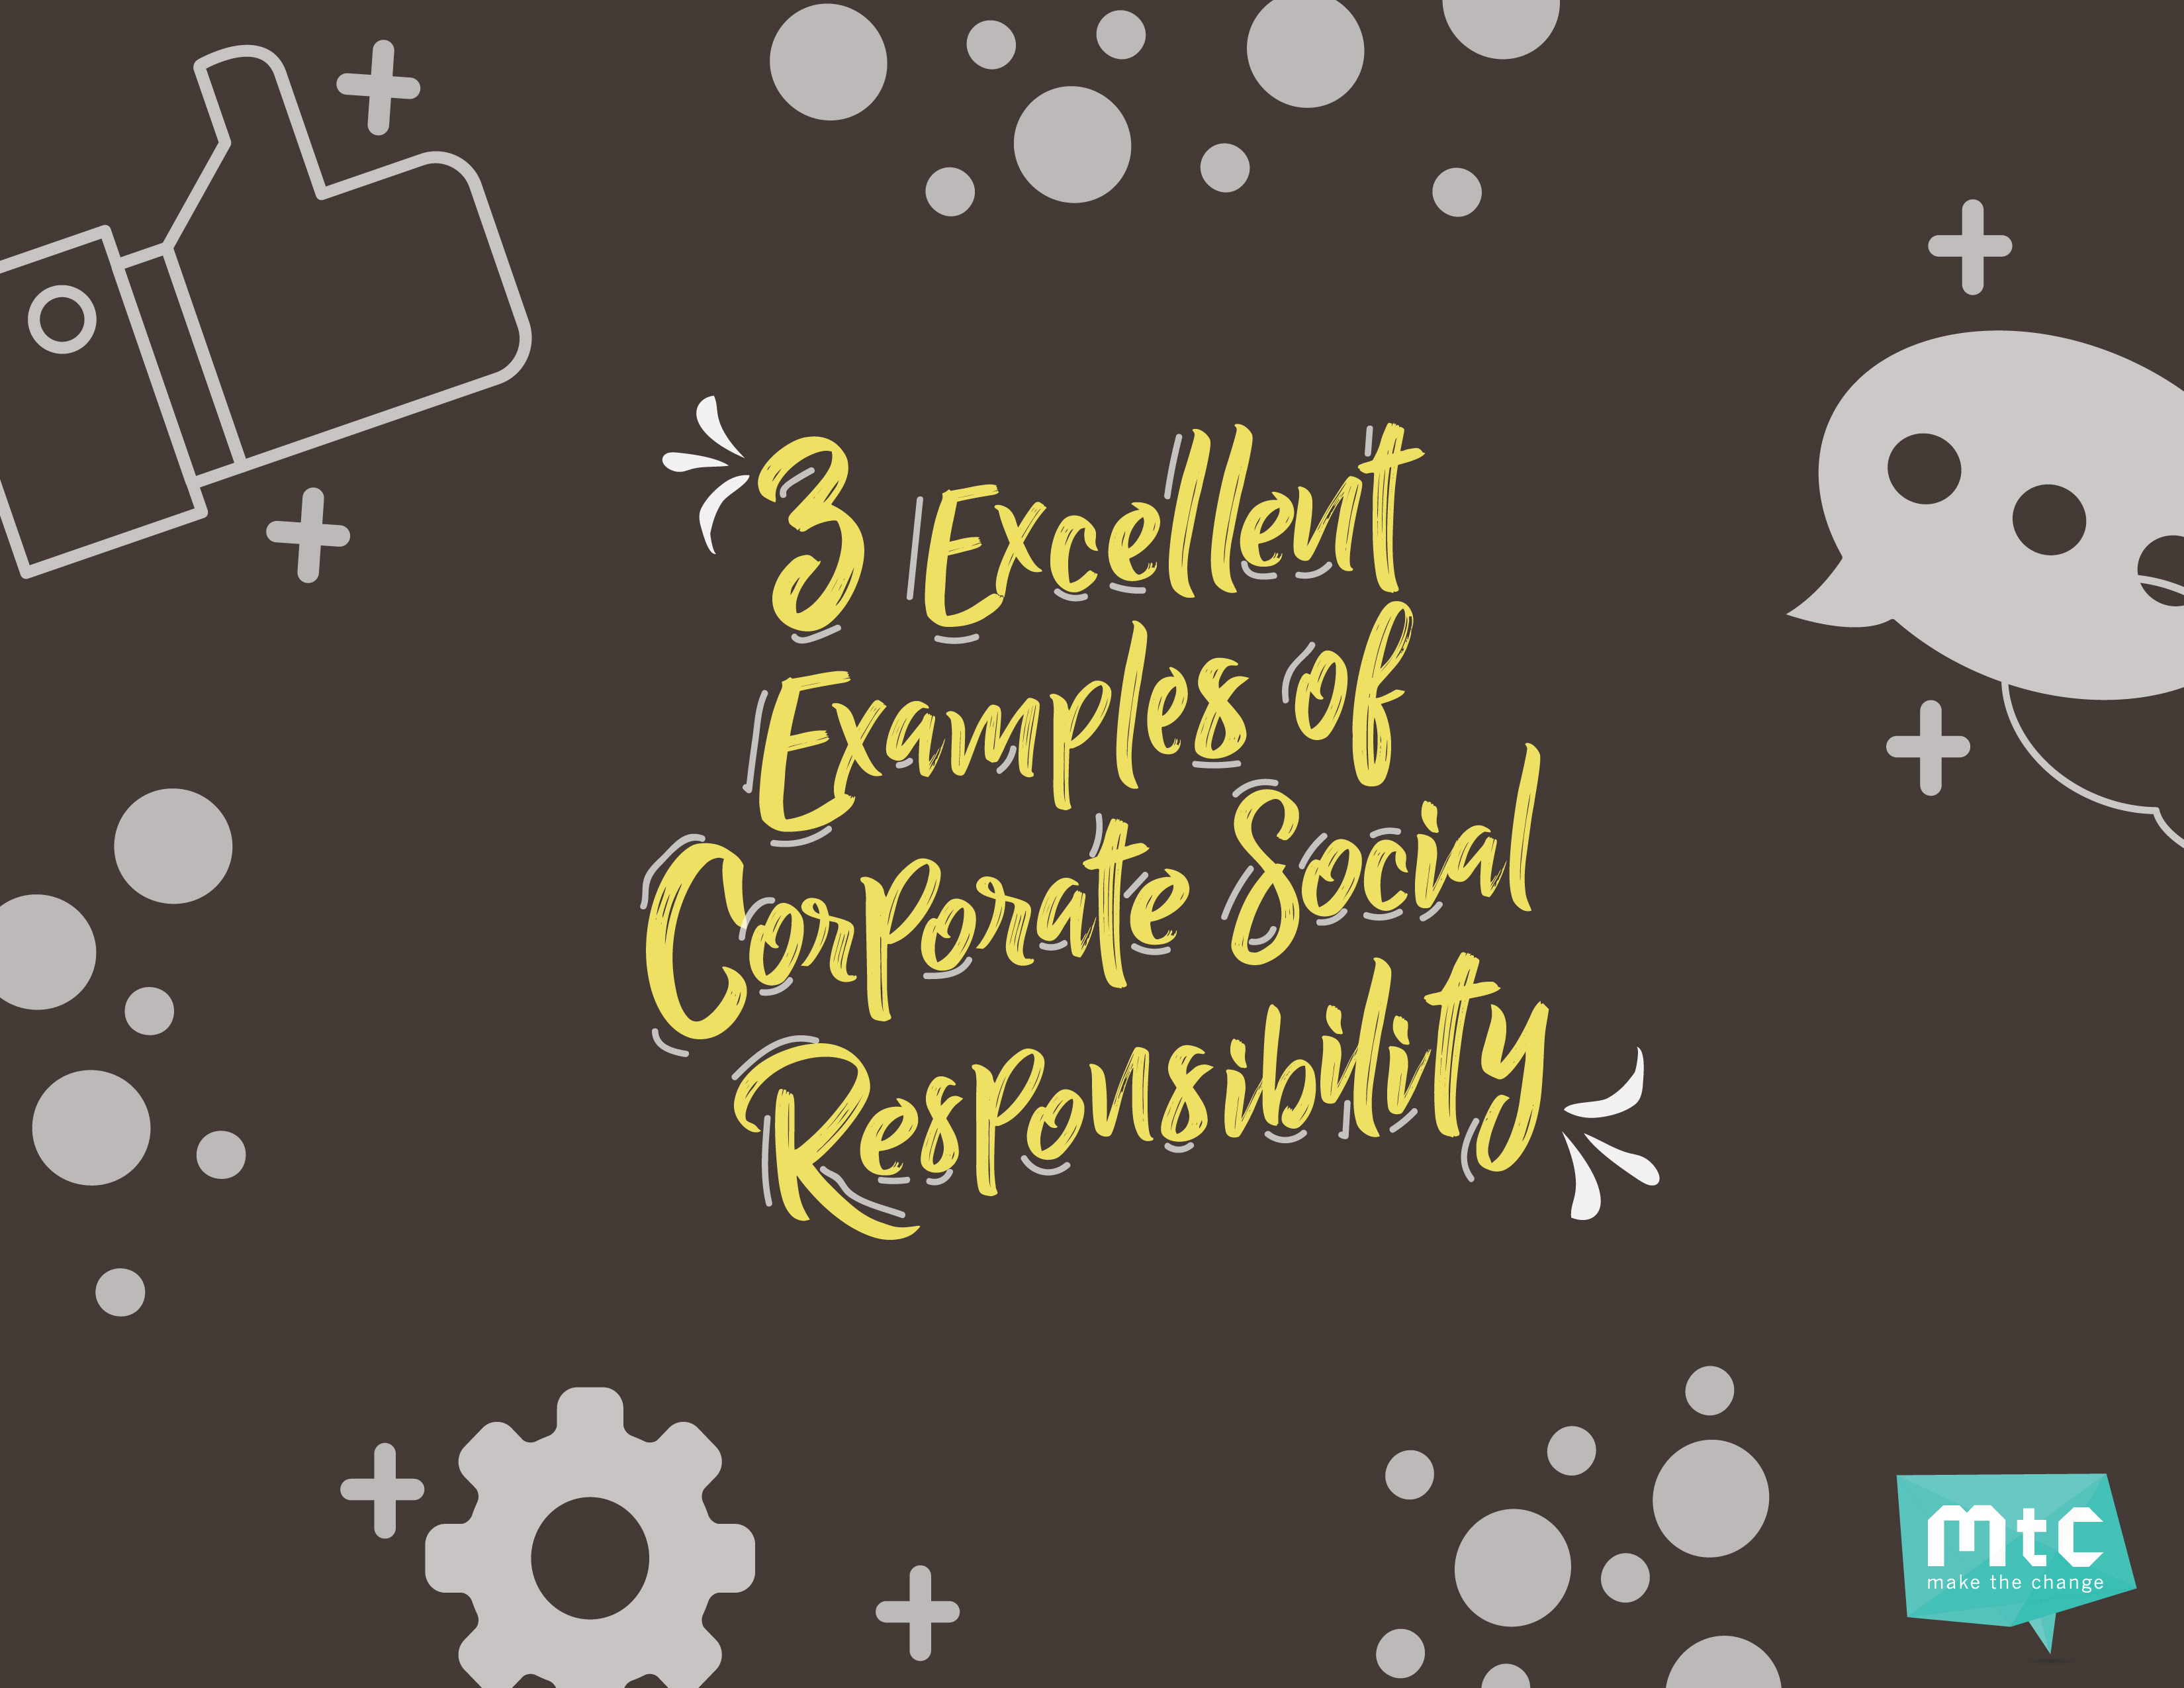 corporate social responsibility singapore examples